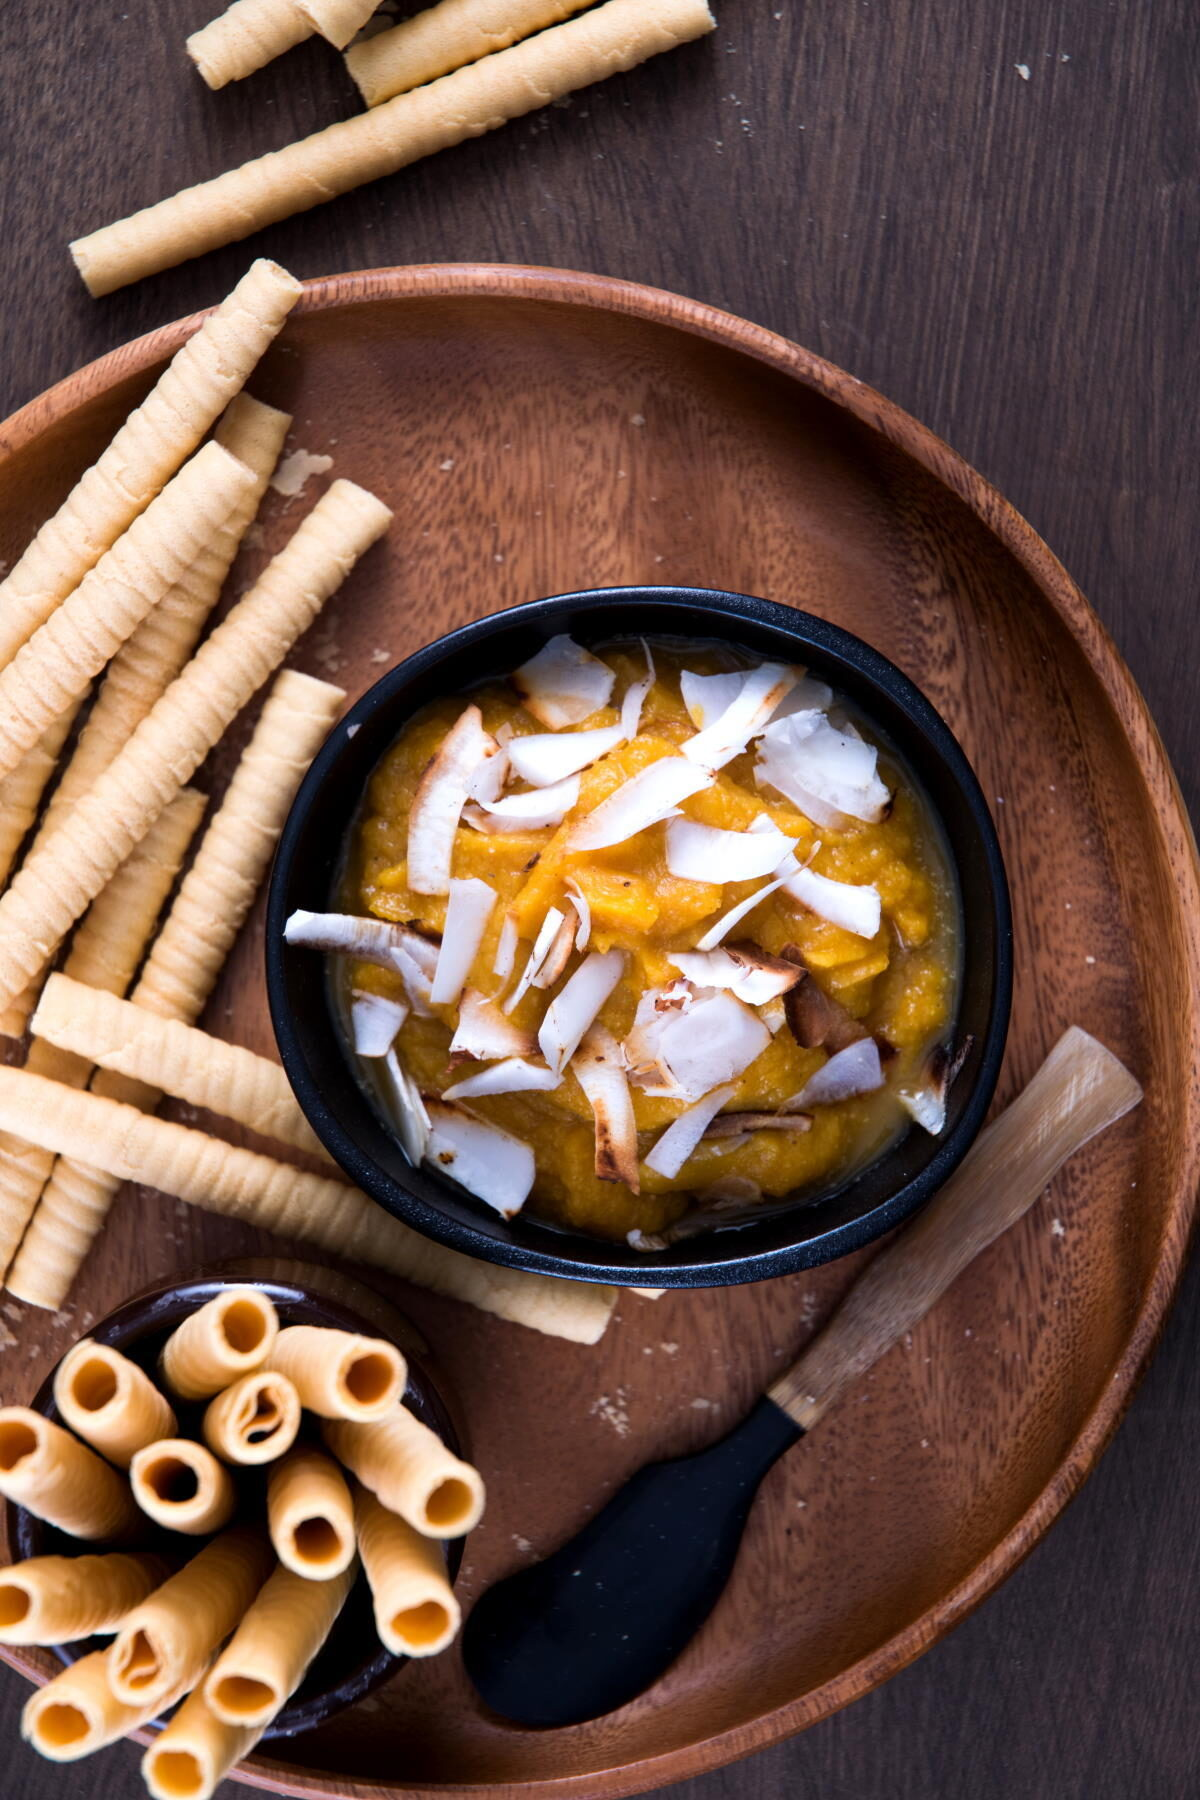 Pumpkin pie hummus in a black bowl on wooden plate with toasted coconut flake topping, breadsticks and small spatula on the side.